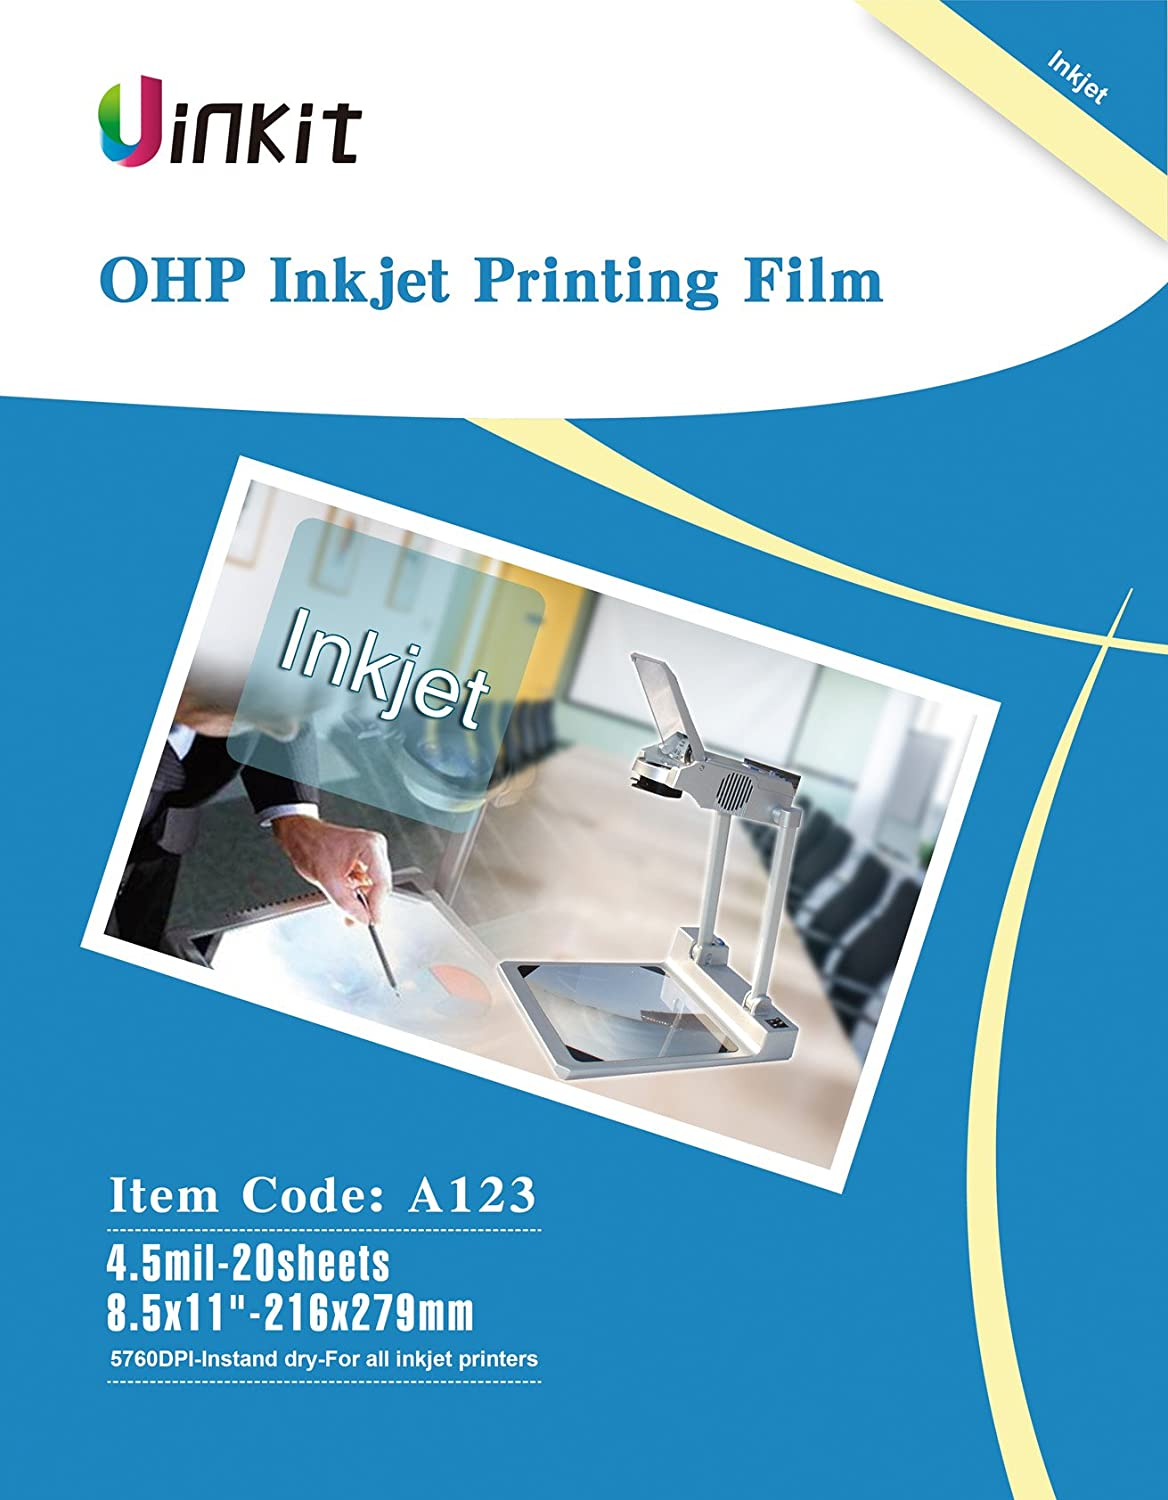 OHP Film Overhead Projector Film - 8.5x11 For Inkjet Printer only Transparency Film 20 Sheets Uinkit